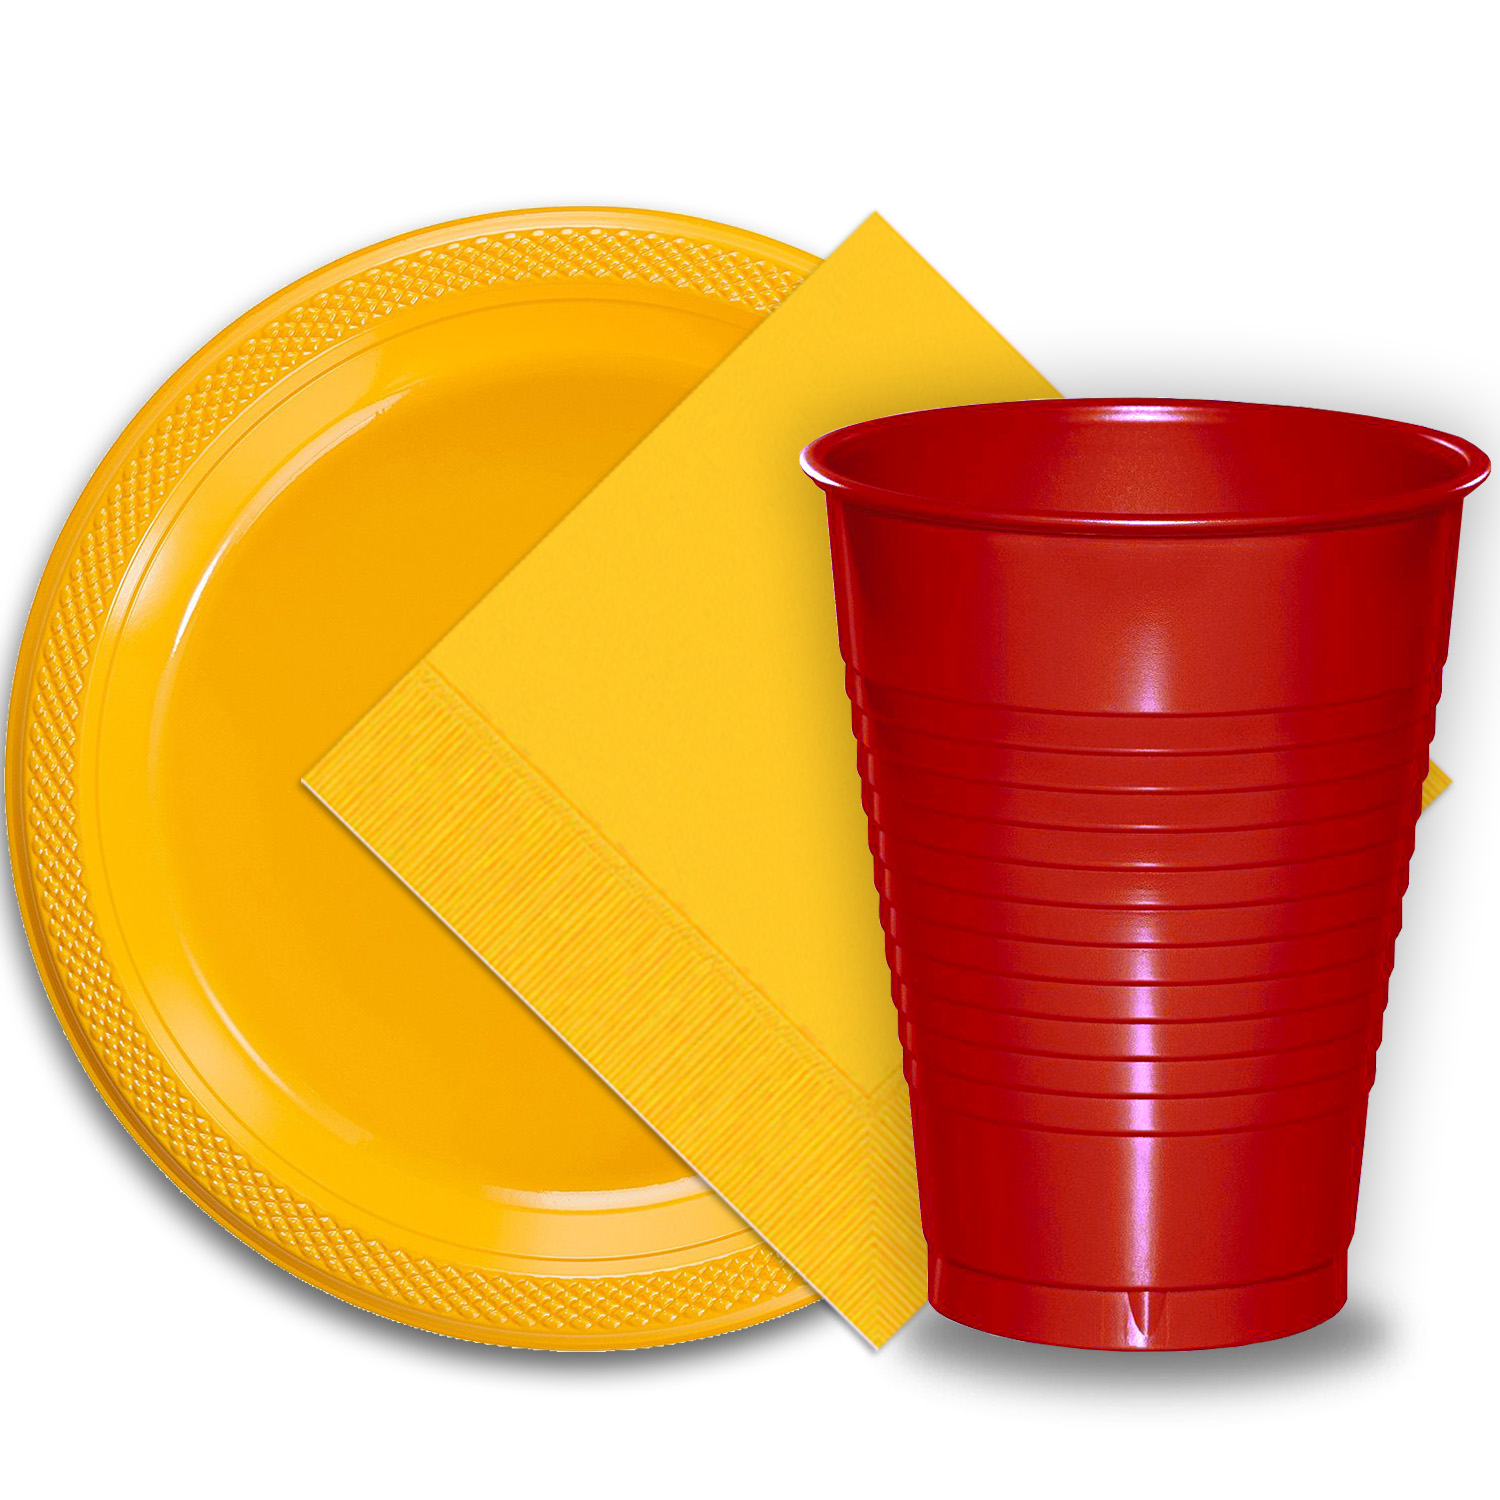 "50 Yellow Plastic Plates (9""), 50 Red Plastic Cups (12 oz.), and 50 Yellow Paper Napkins, Dazzelling Colored Disposable Party Supplies Tableware Set for Fifty Guests."